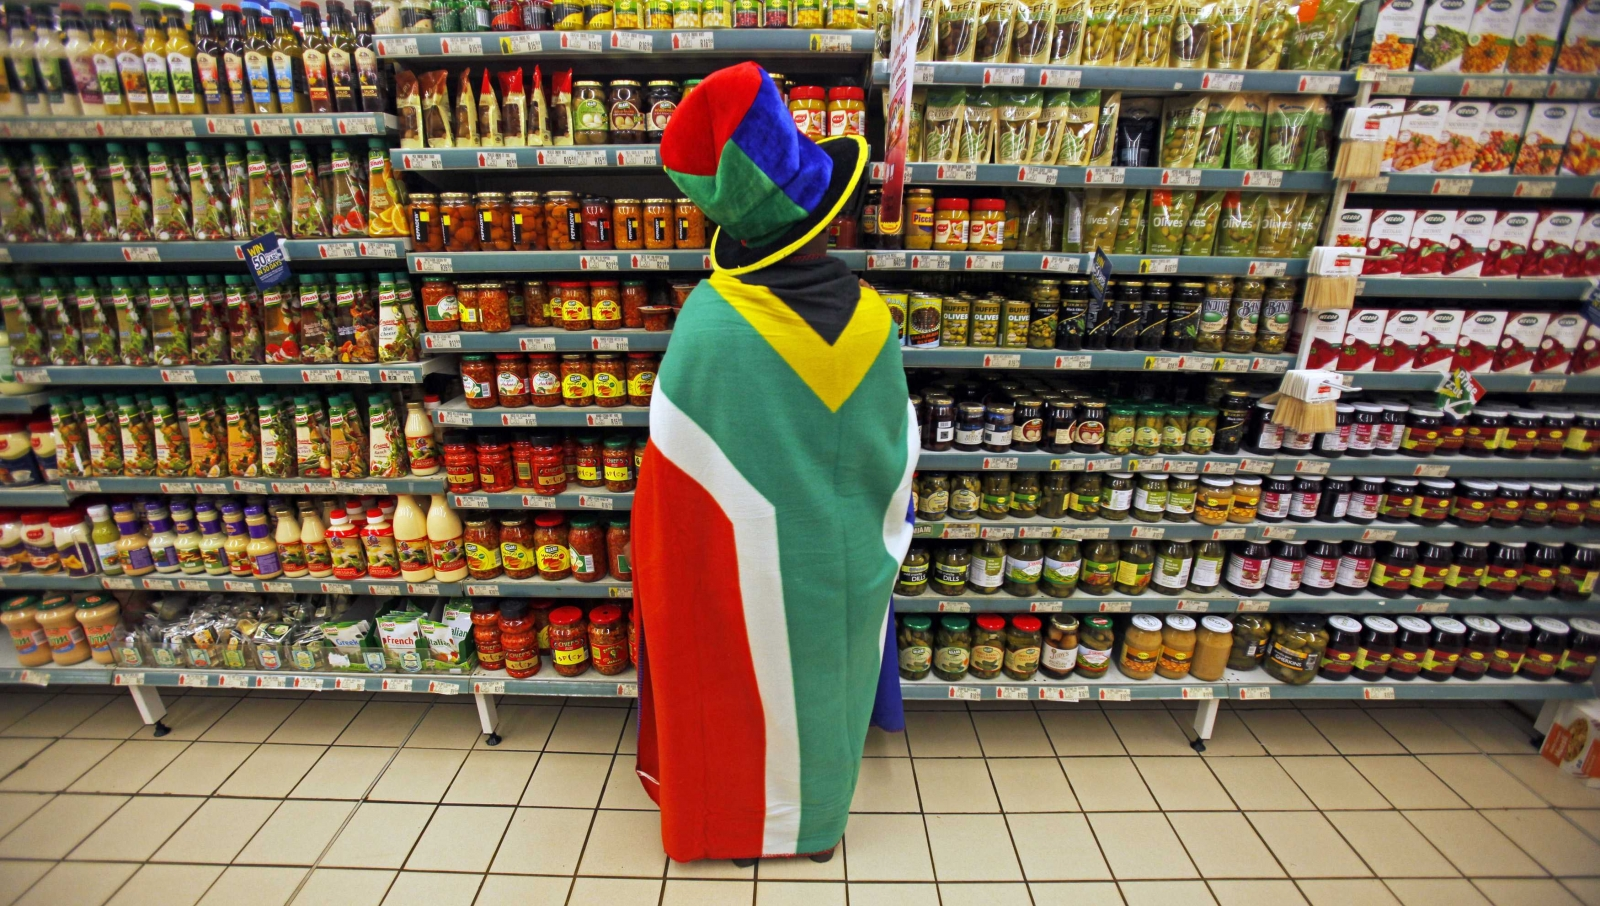 woman with a South African flag draped around her shops for groceries in Pretoria